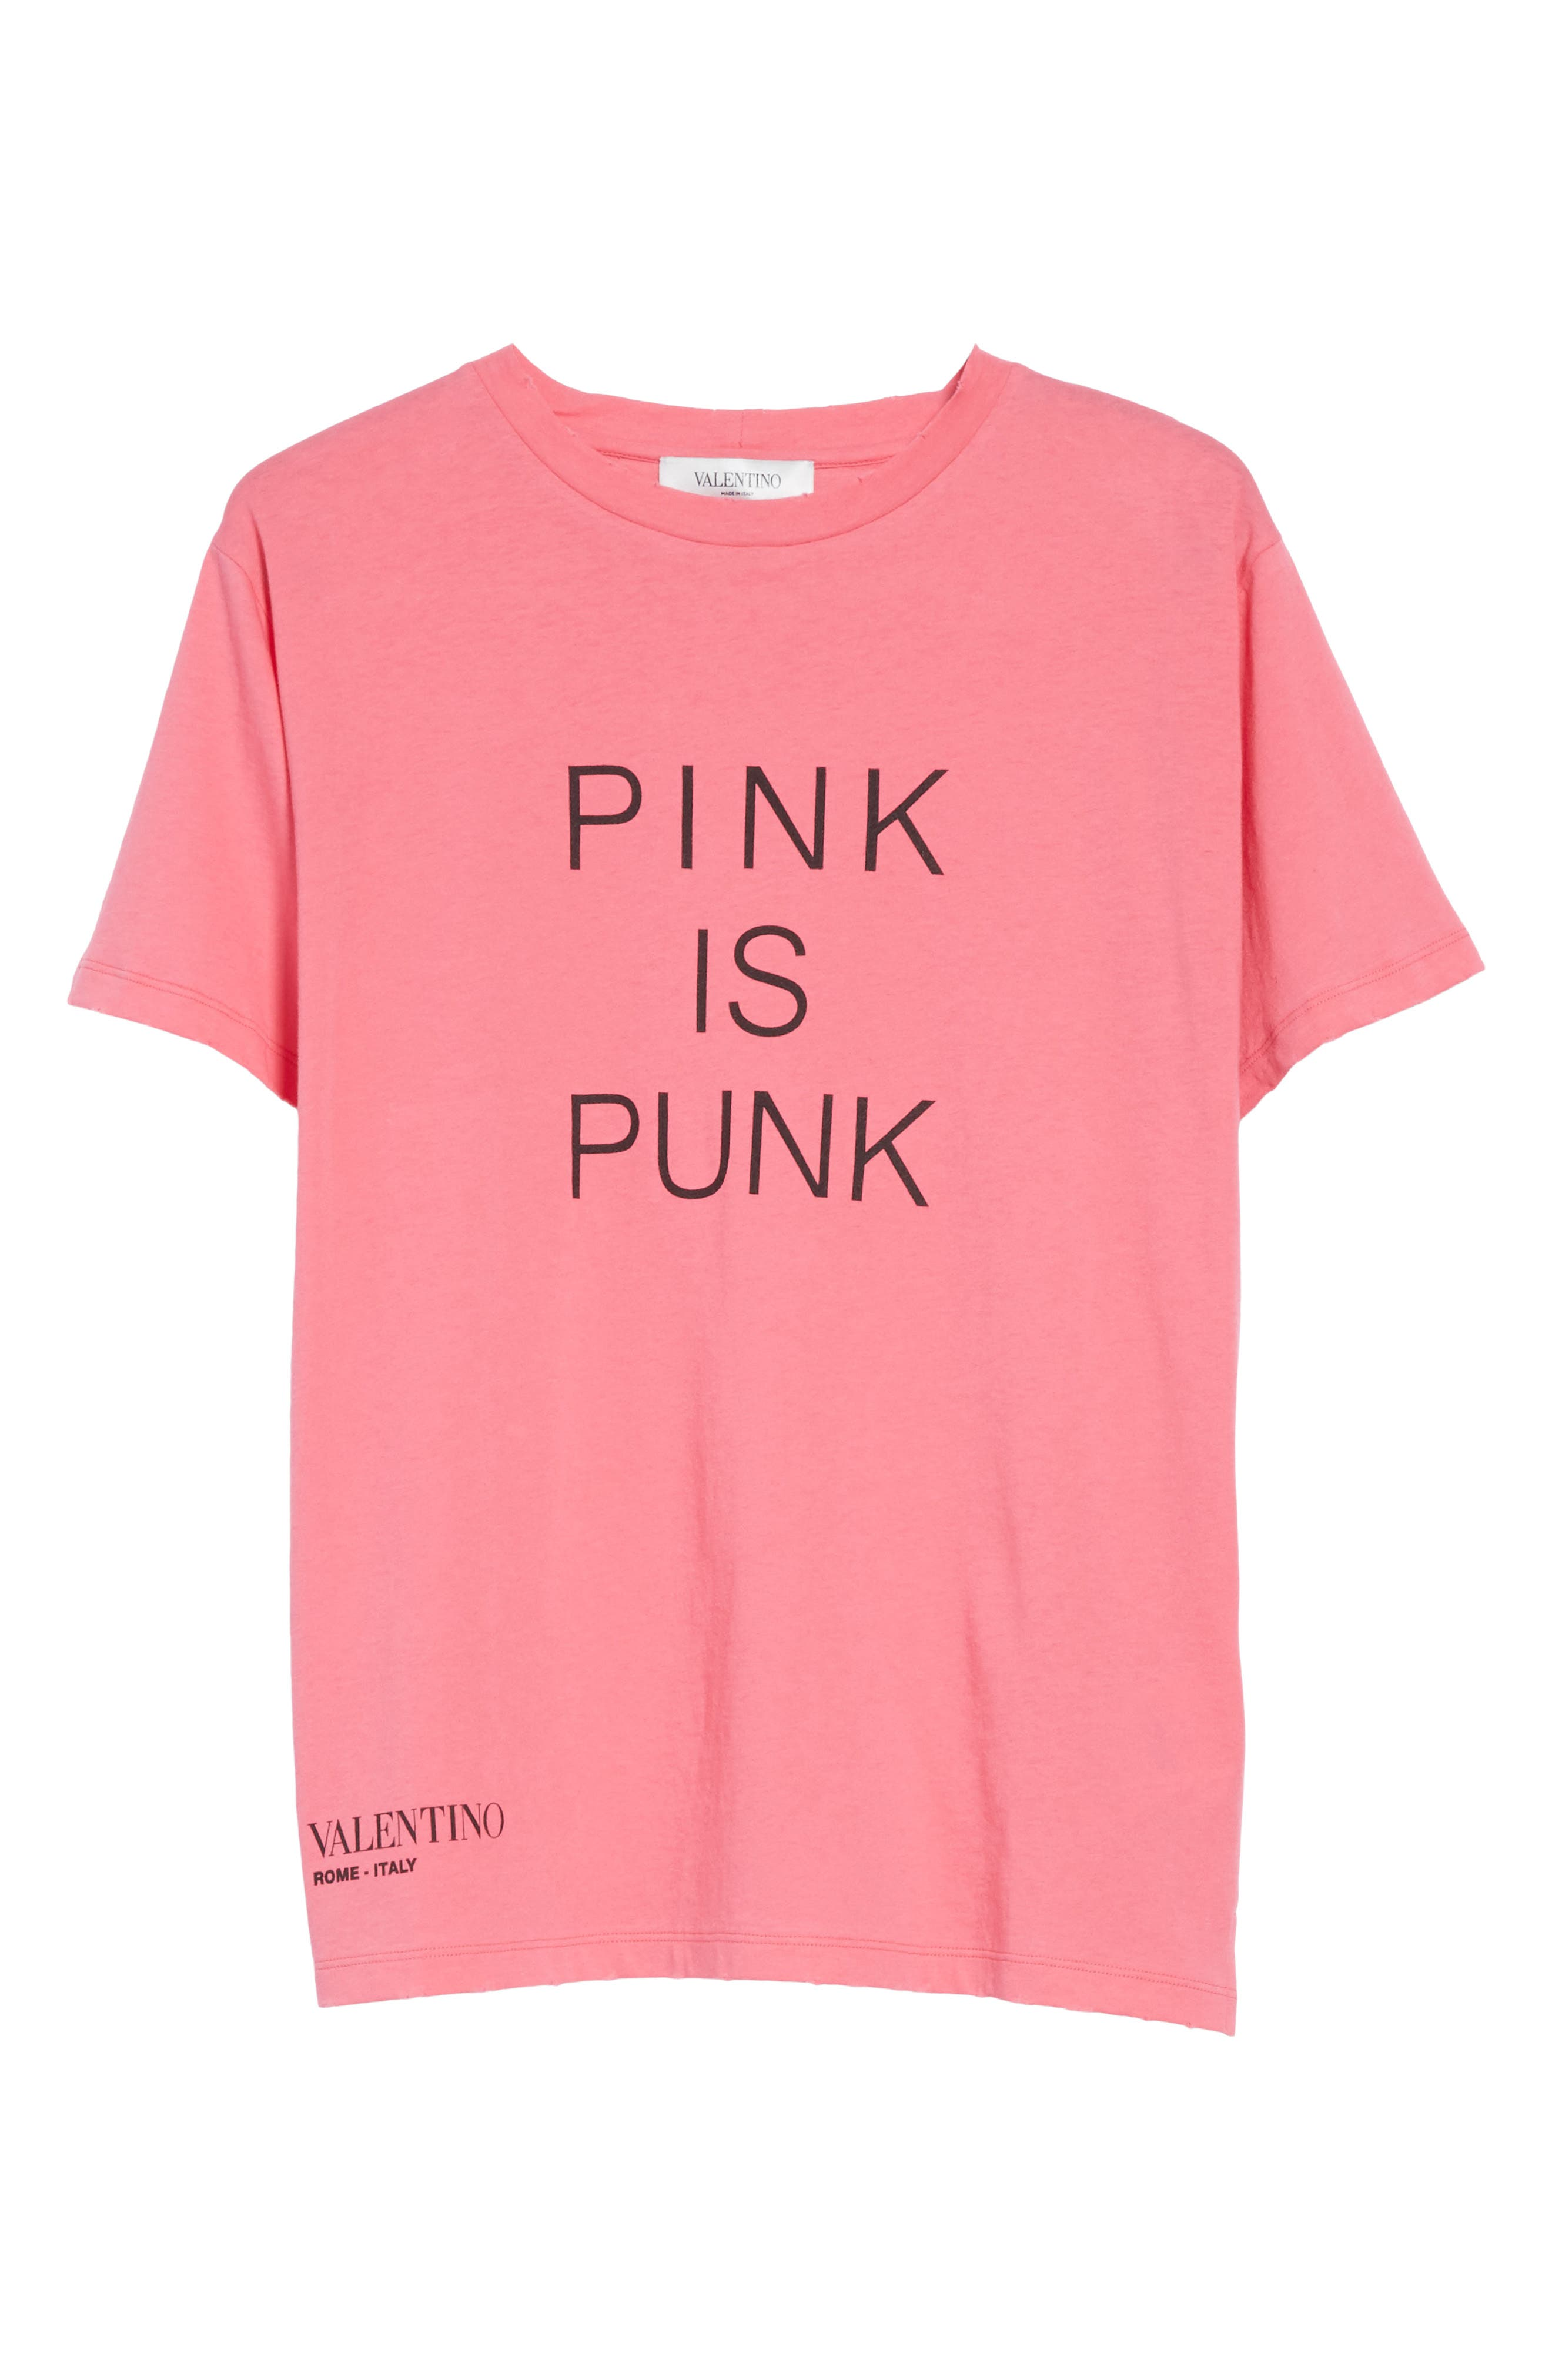 Pink Is Punk Cotton Tee,                             Alternate thumbnail 6, color,                             Pink